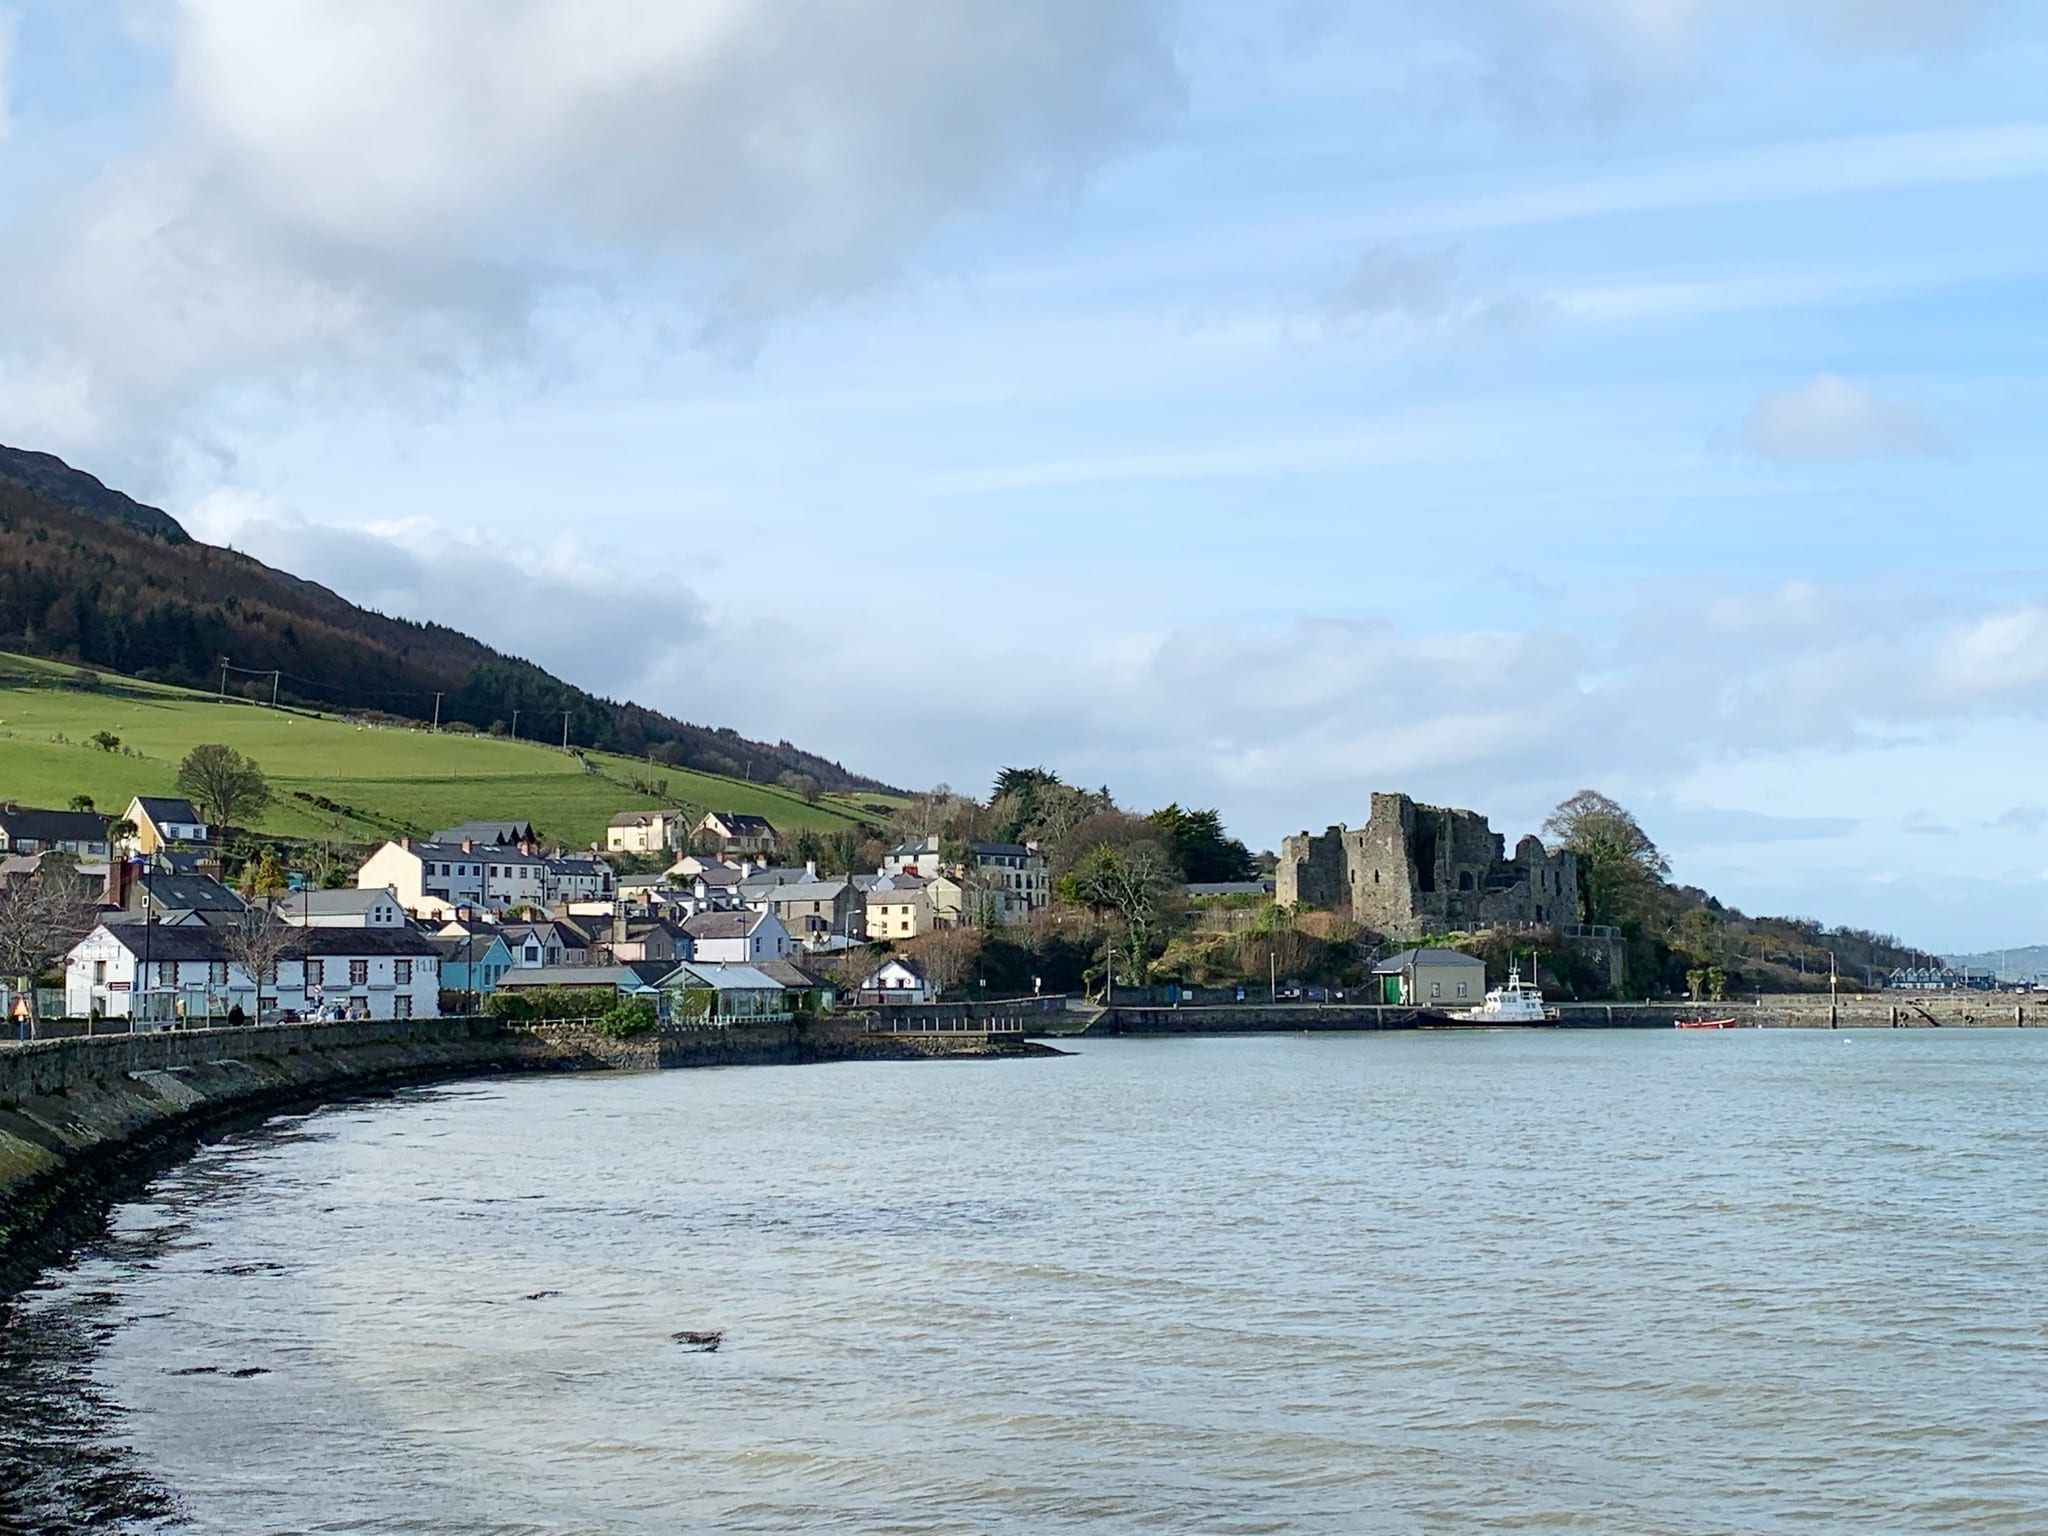 Carlingford: A Seaside Town in Ireland That Truly Surprised Me